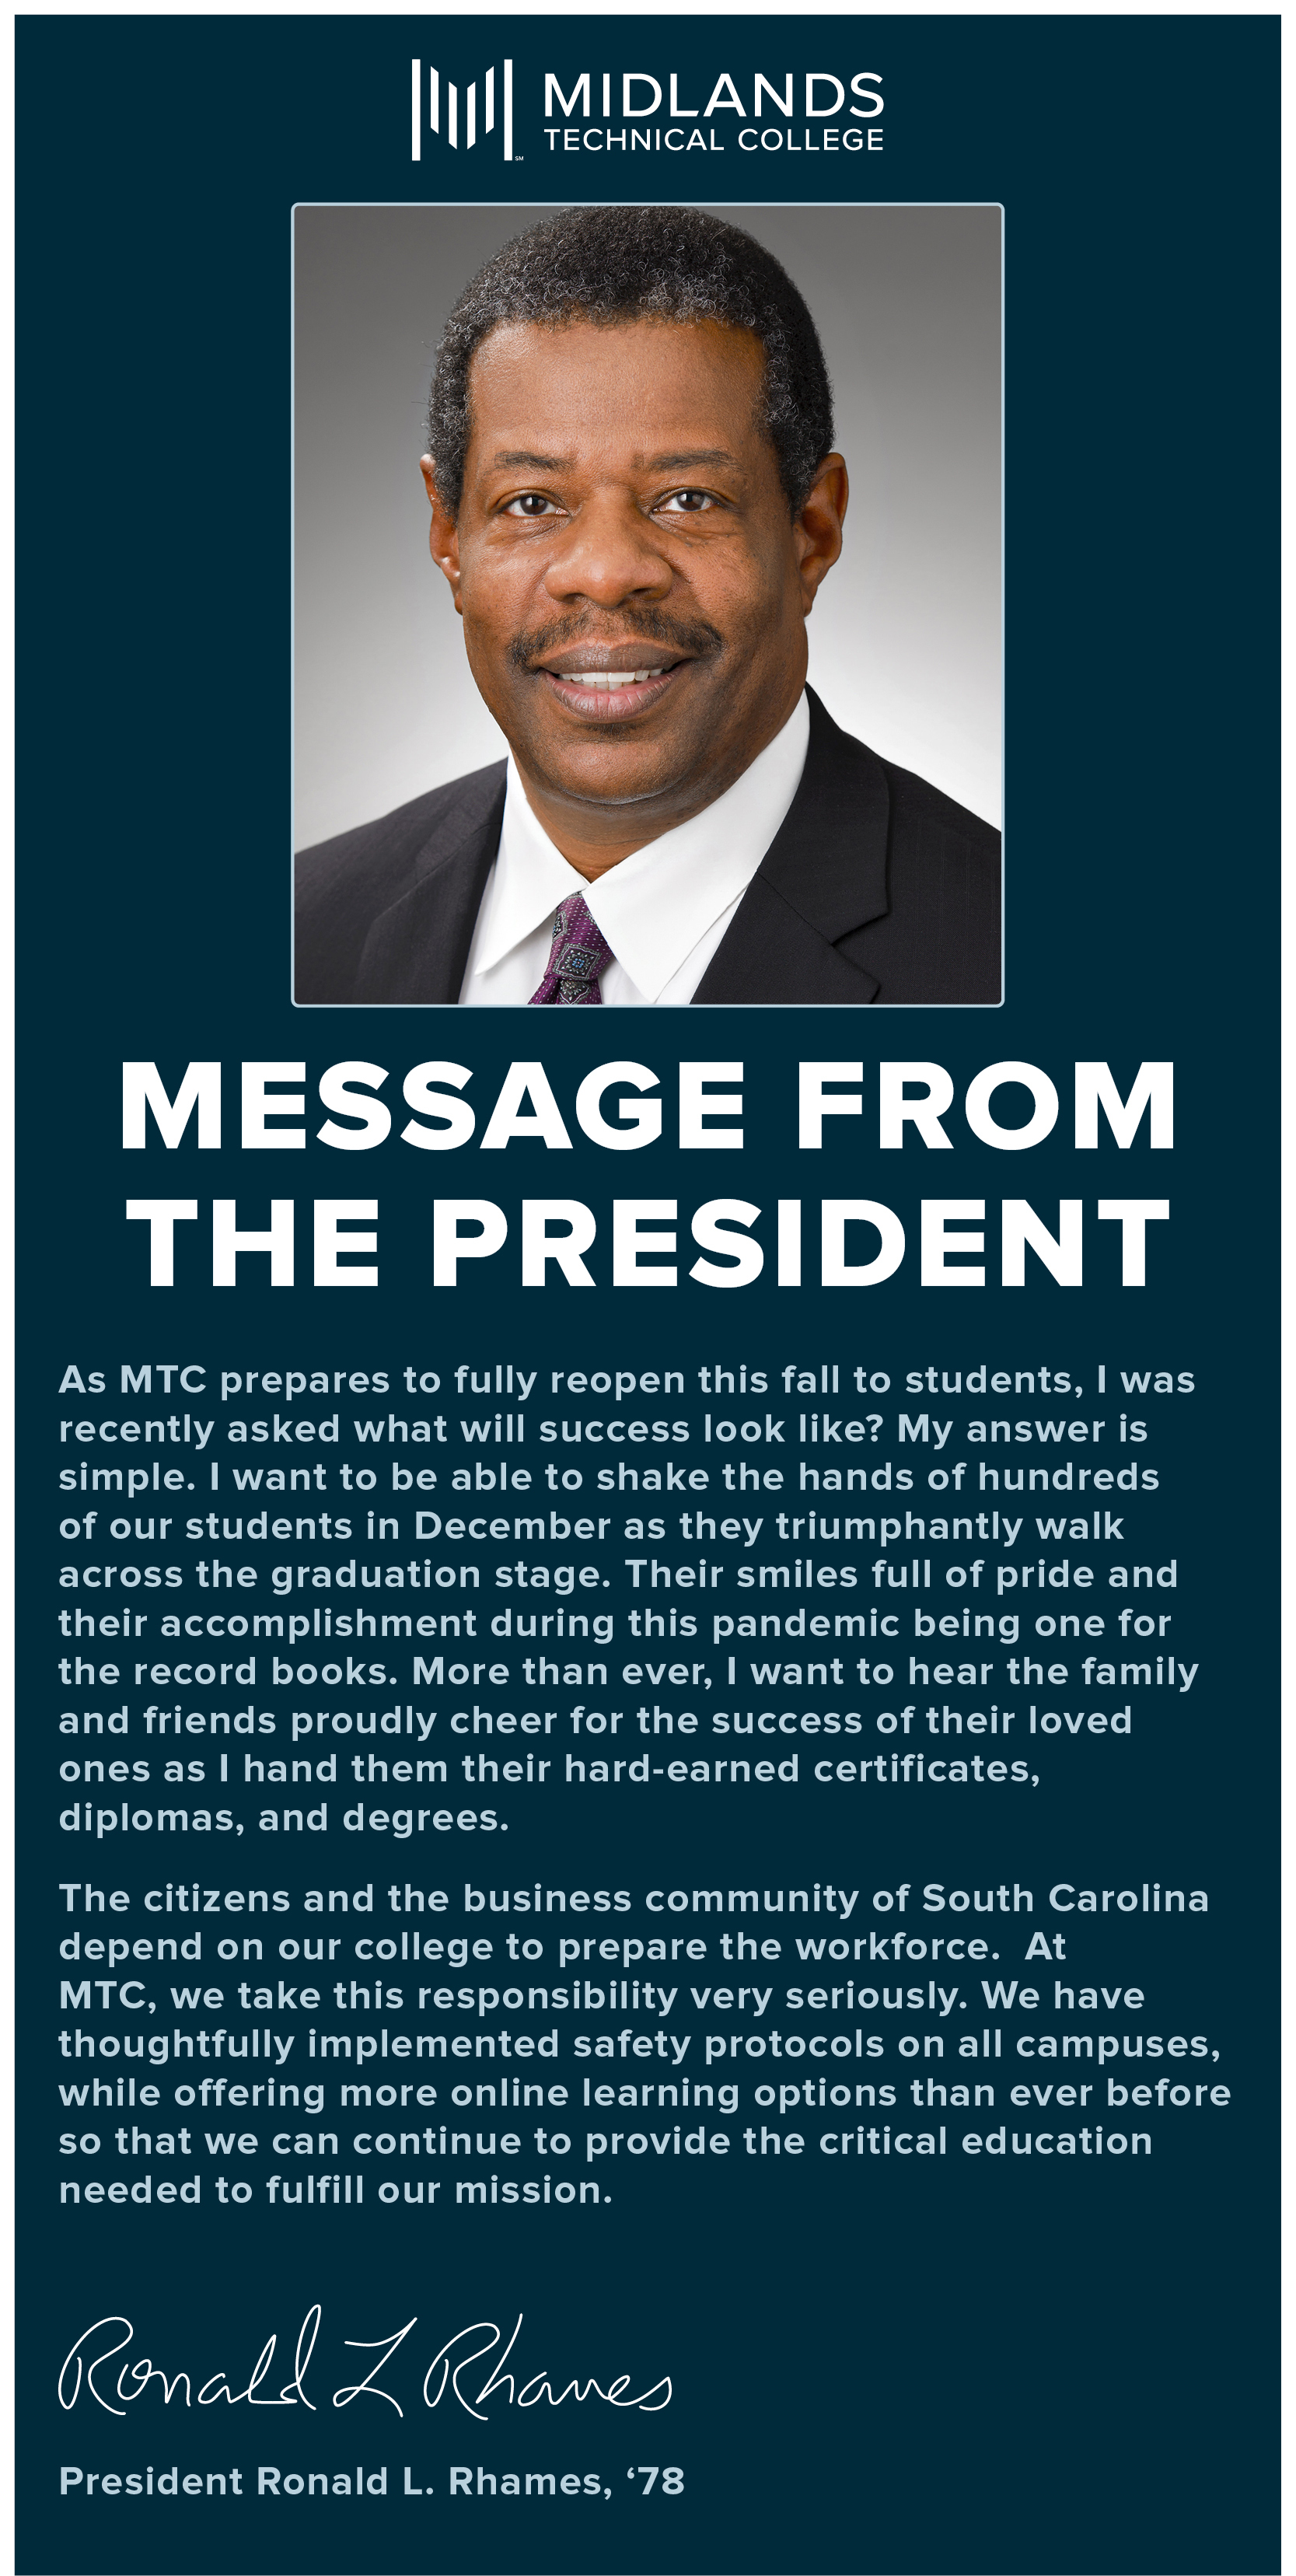 MESSAGE FROM THE PRESIDENT: As MTC prepares to fully reopen this fall to students, I was recently asked what will success look like? My answer is simple. I want to be able to shake the hands of hundreds of our students in December as they triumphantly walk across the graduation stage. Their smiles full of pride and their accomplishment during this pandemic being one for the record books. More than ever, I want to hear the family and friends proudly cheer for the success of their loved one as I hand then their hard-earned certificates, diplomas, and degrees. The citizens and the business community of South Carolina depend on our college to prepare the workforce. At MTC, we take this responsibility very seriously. We have thoughtfully implemented safety protocols on all campuses, while offering more online learning options than ever before so that we can continue to provide the critical education needed to fulfill our mission. President Ronald L. Rhames, '78